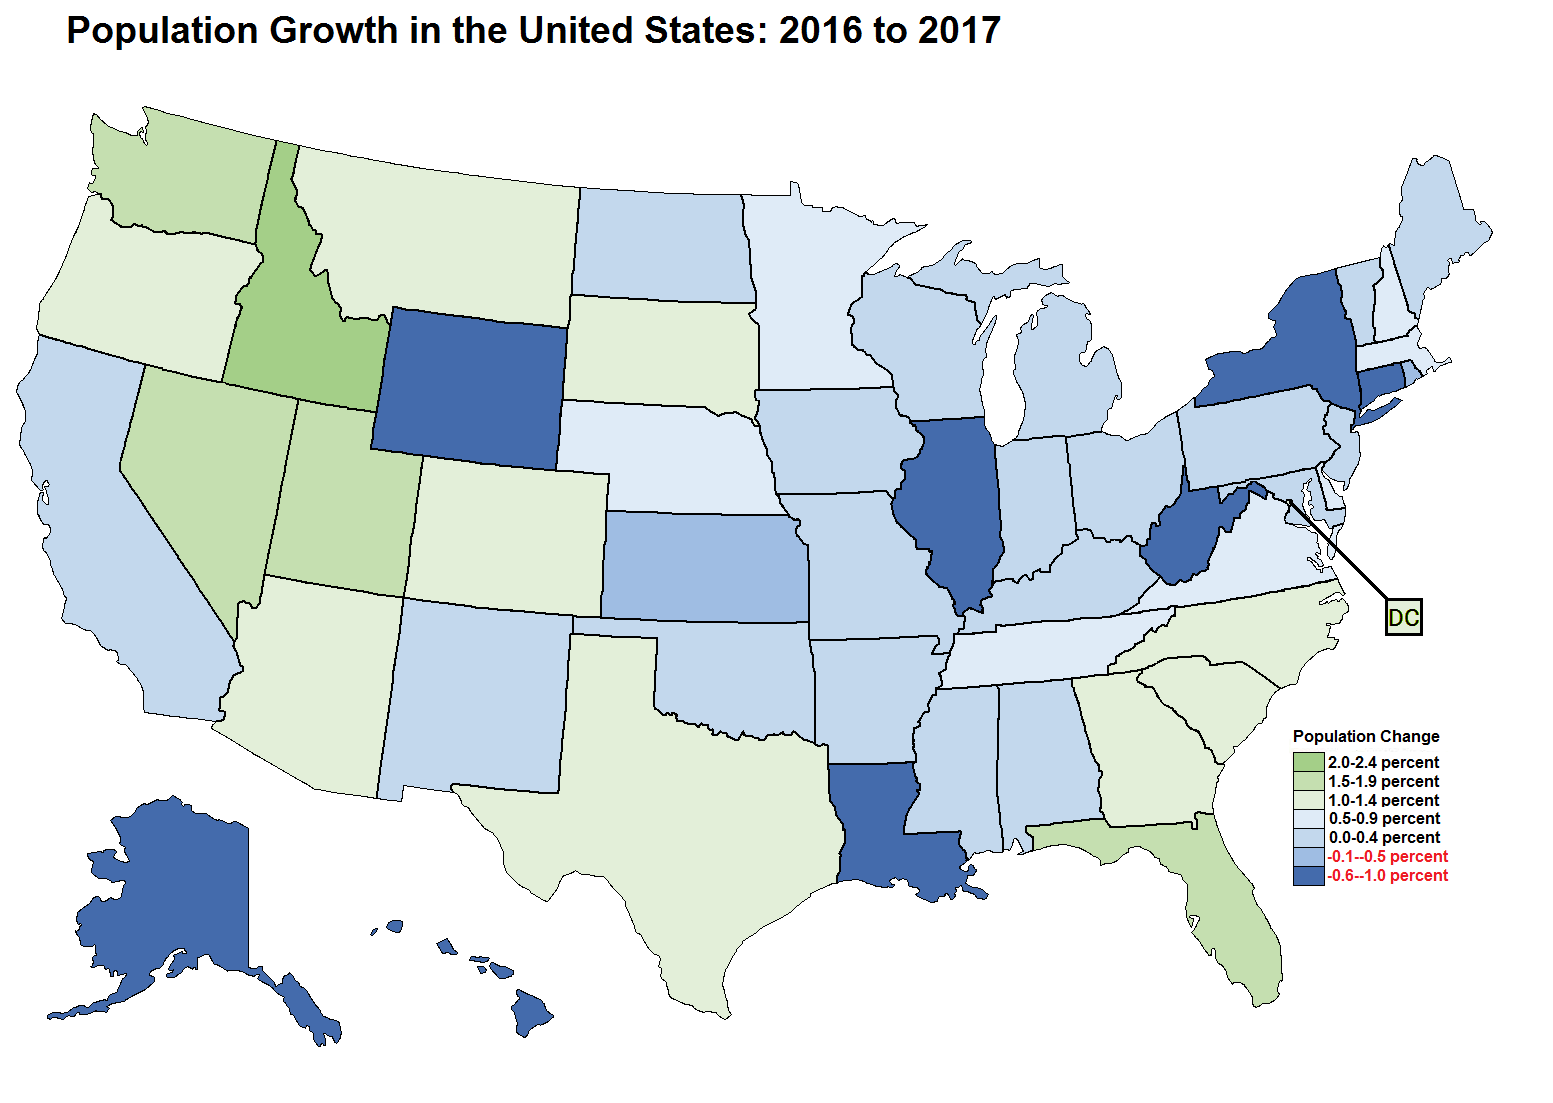 state population growth 2016-2017.png